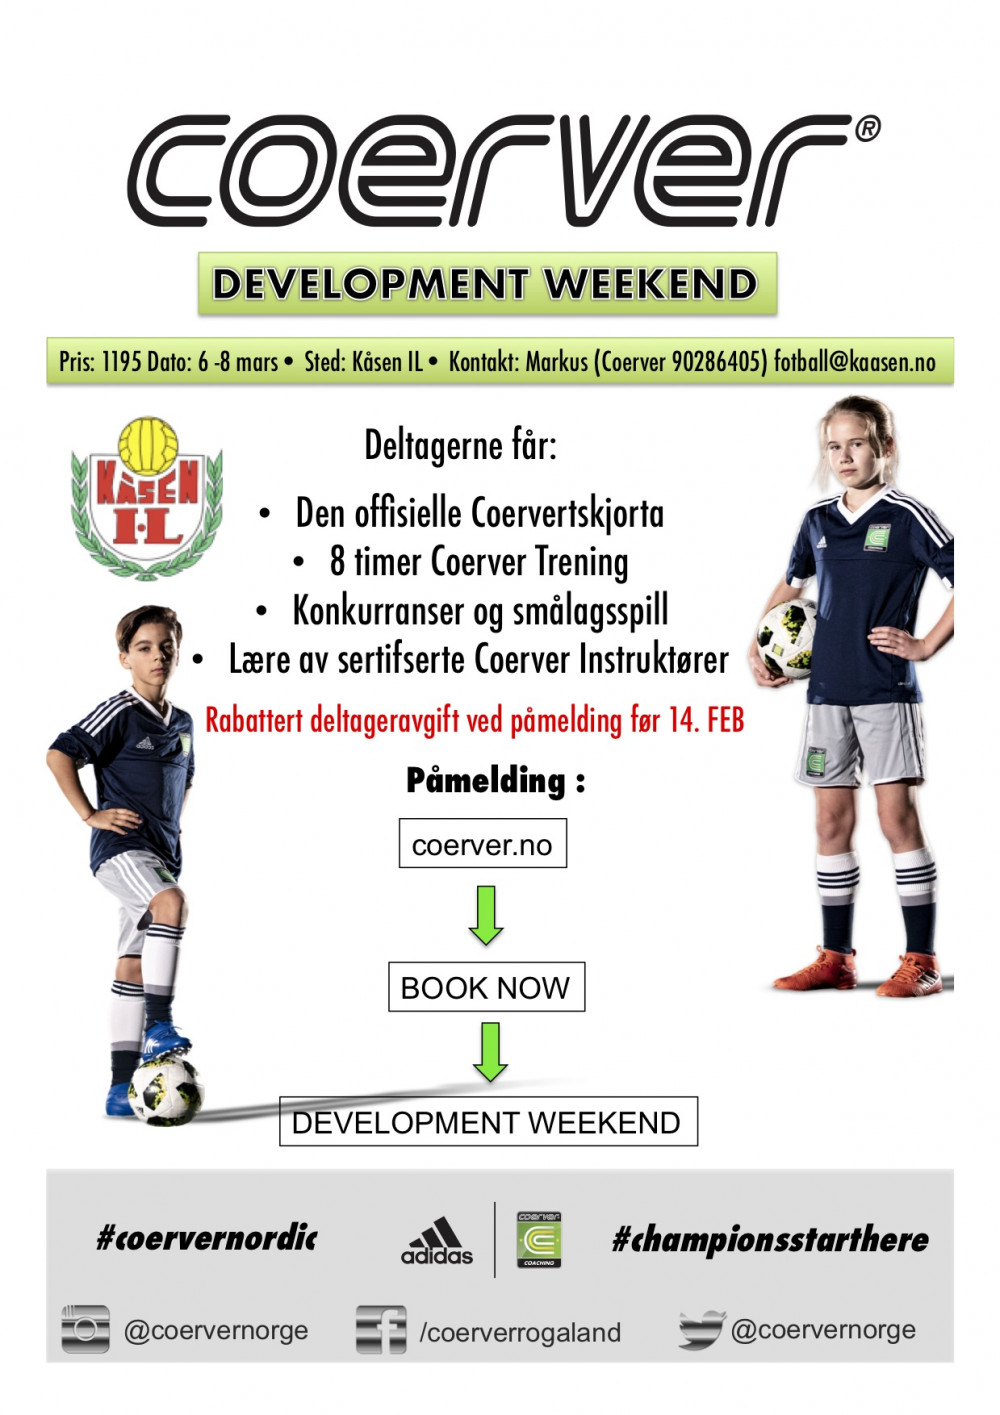 Coerver Development Weekend hos Kåsen IL 6-8 mars